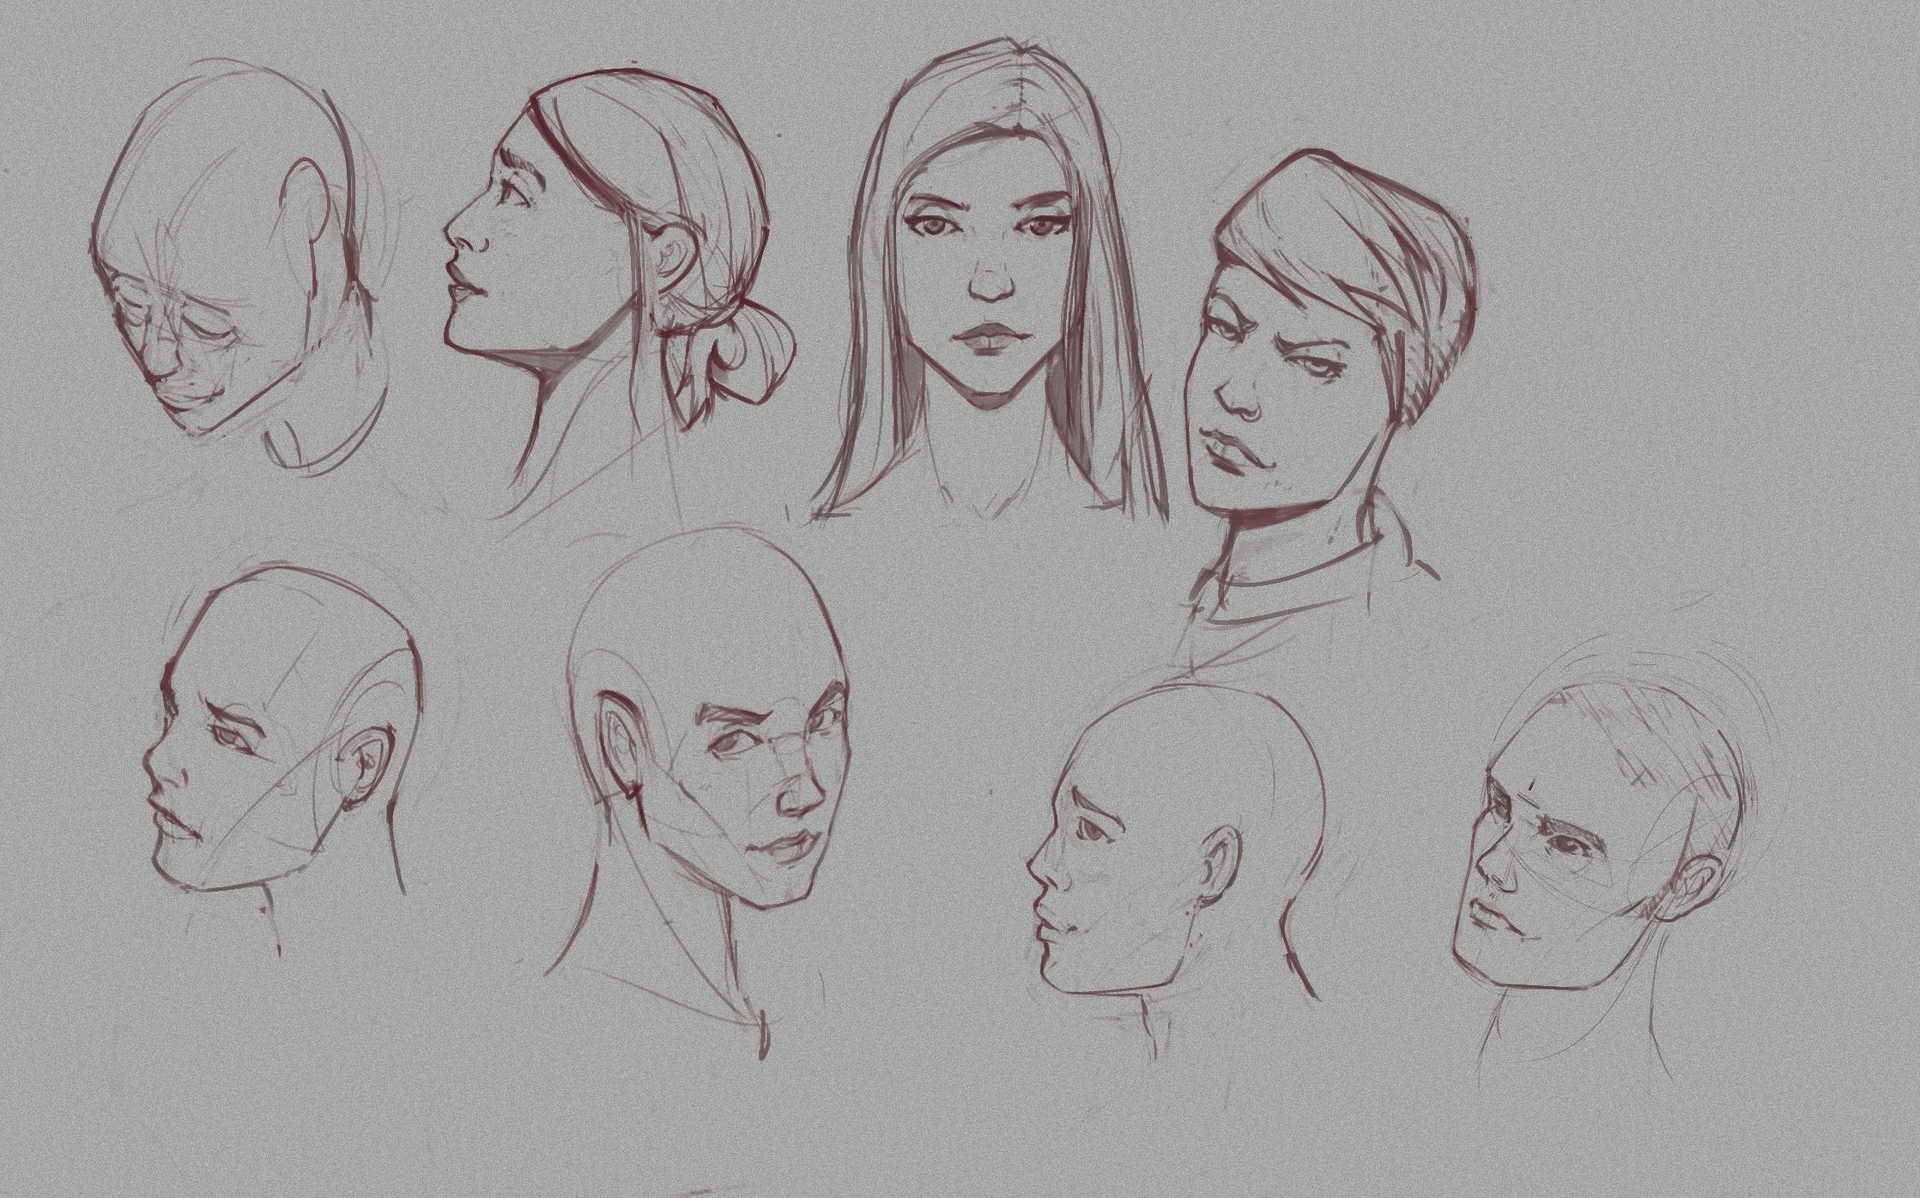 2019-05-02_headstudies_1 par LemoX